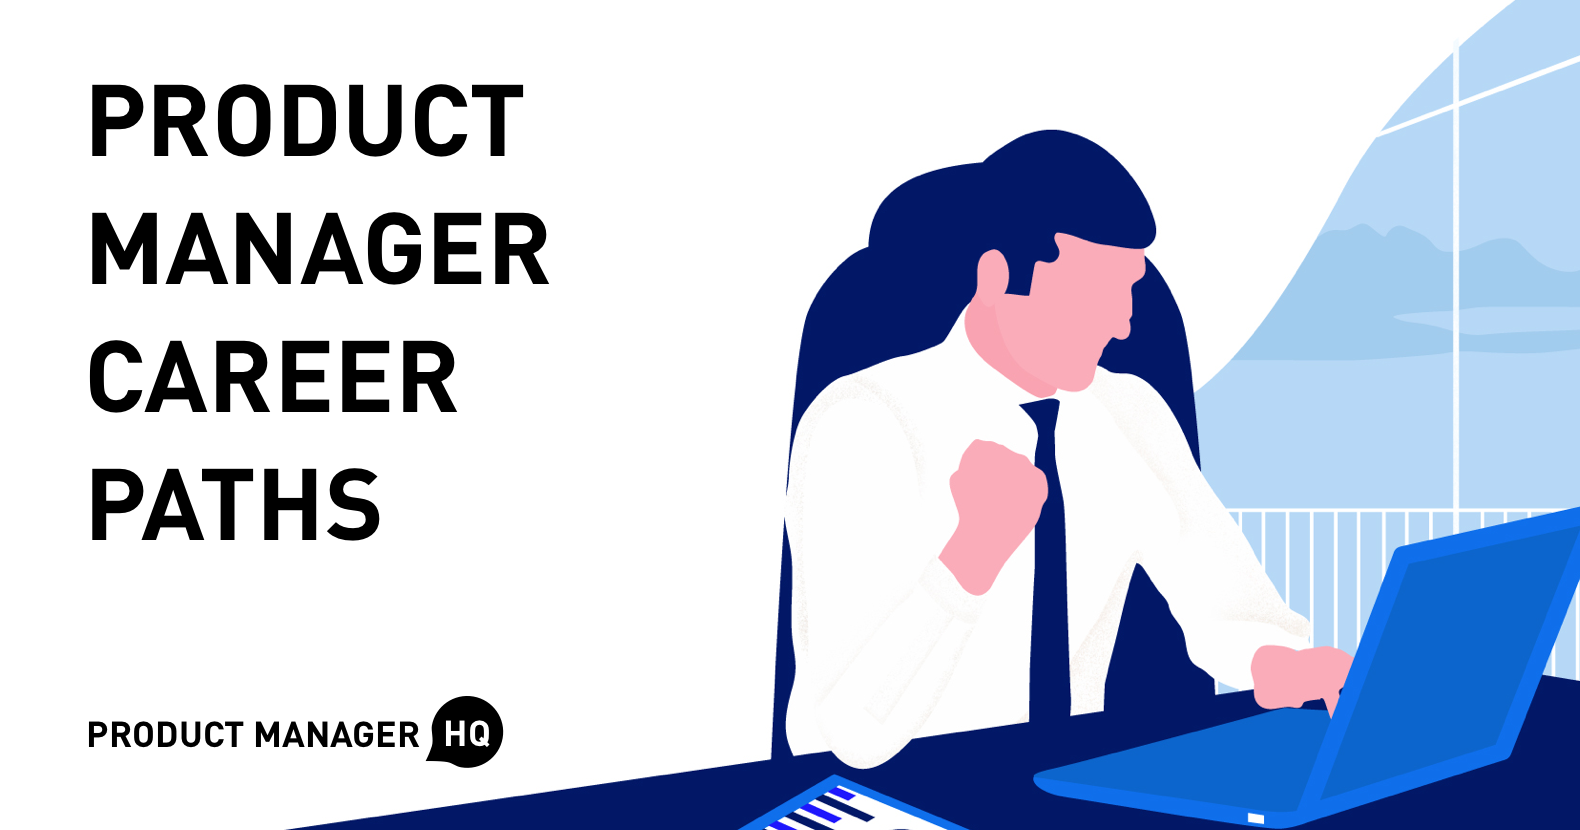 Product manager career paths. Careers clipart guest speaker